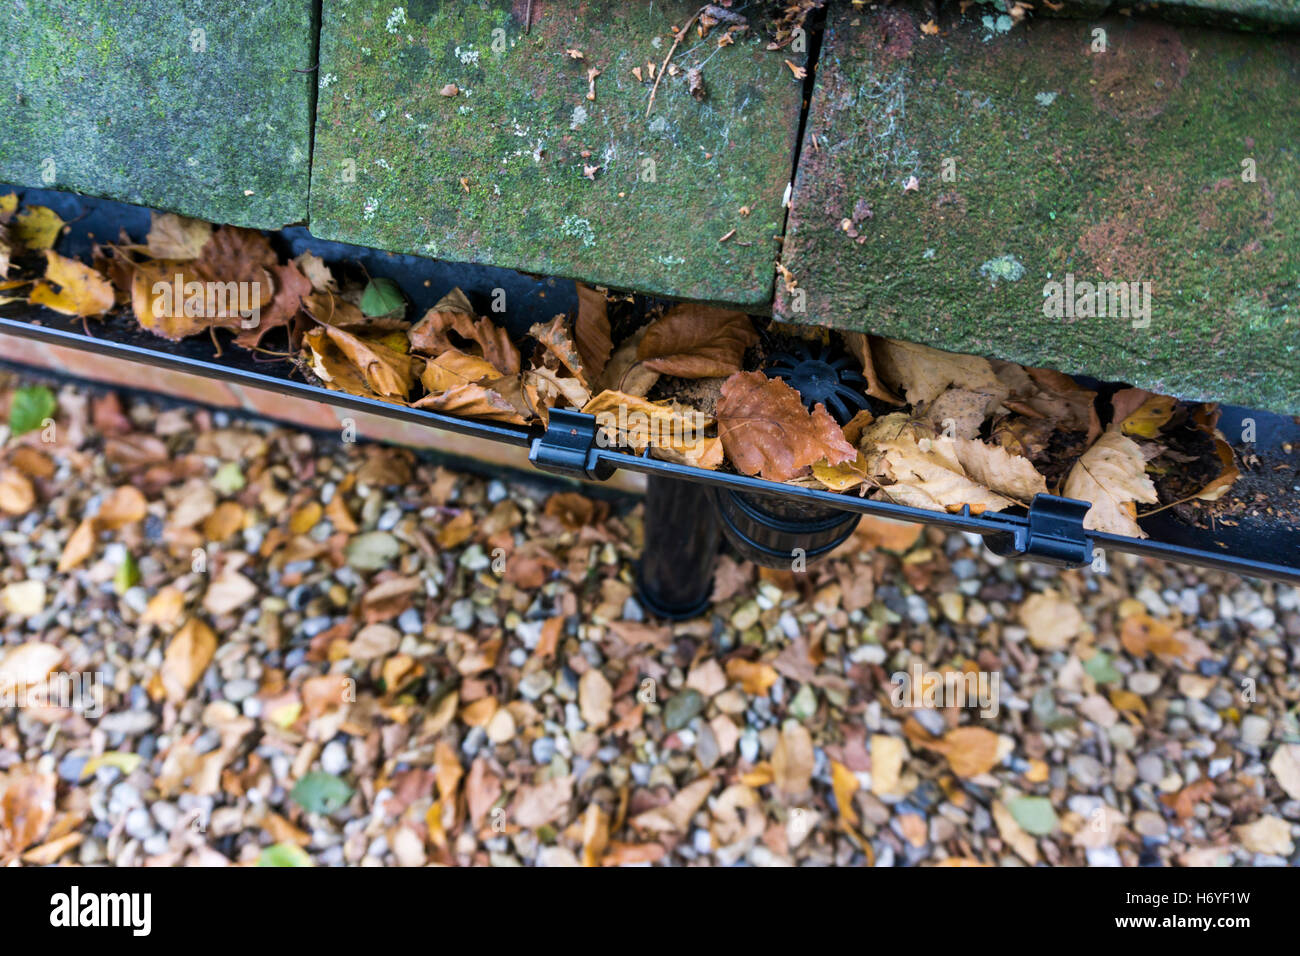 A rainwater gutter on a house becoming blocked with autumn leaves. Stock Photo